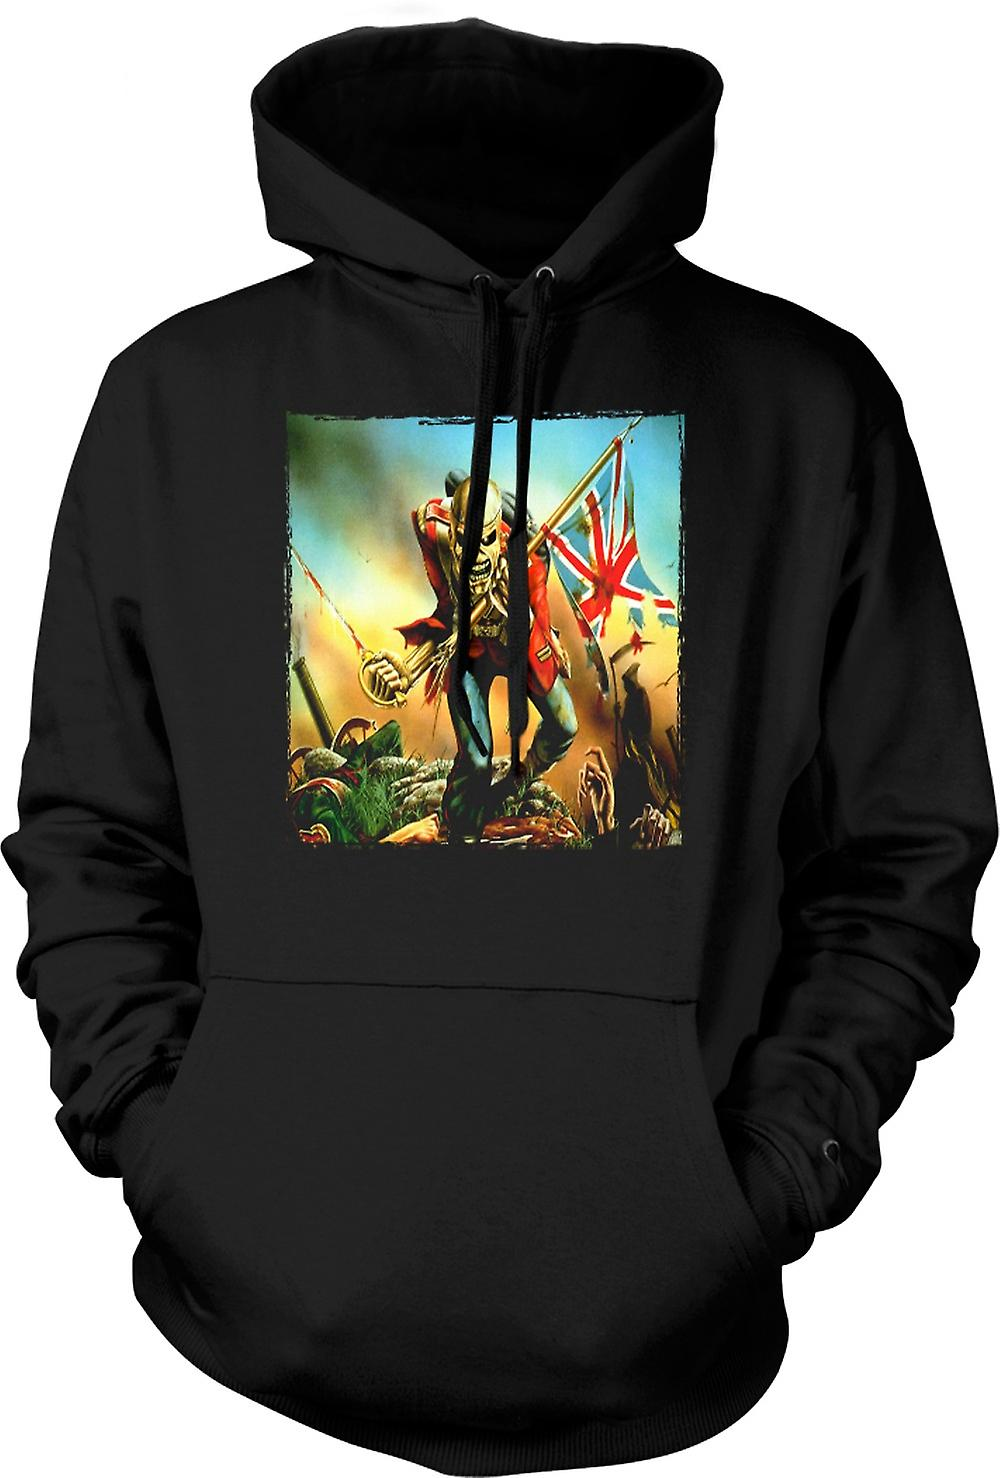 Mens Hoodie - Iron Maiden - Trooper - Album Art